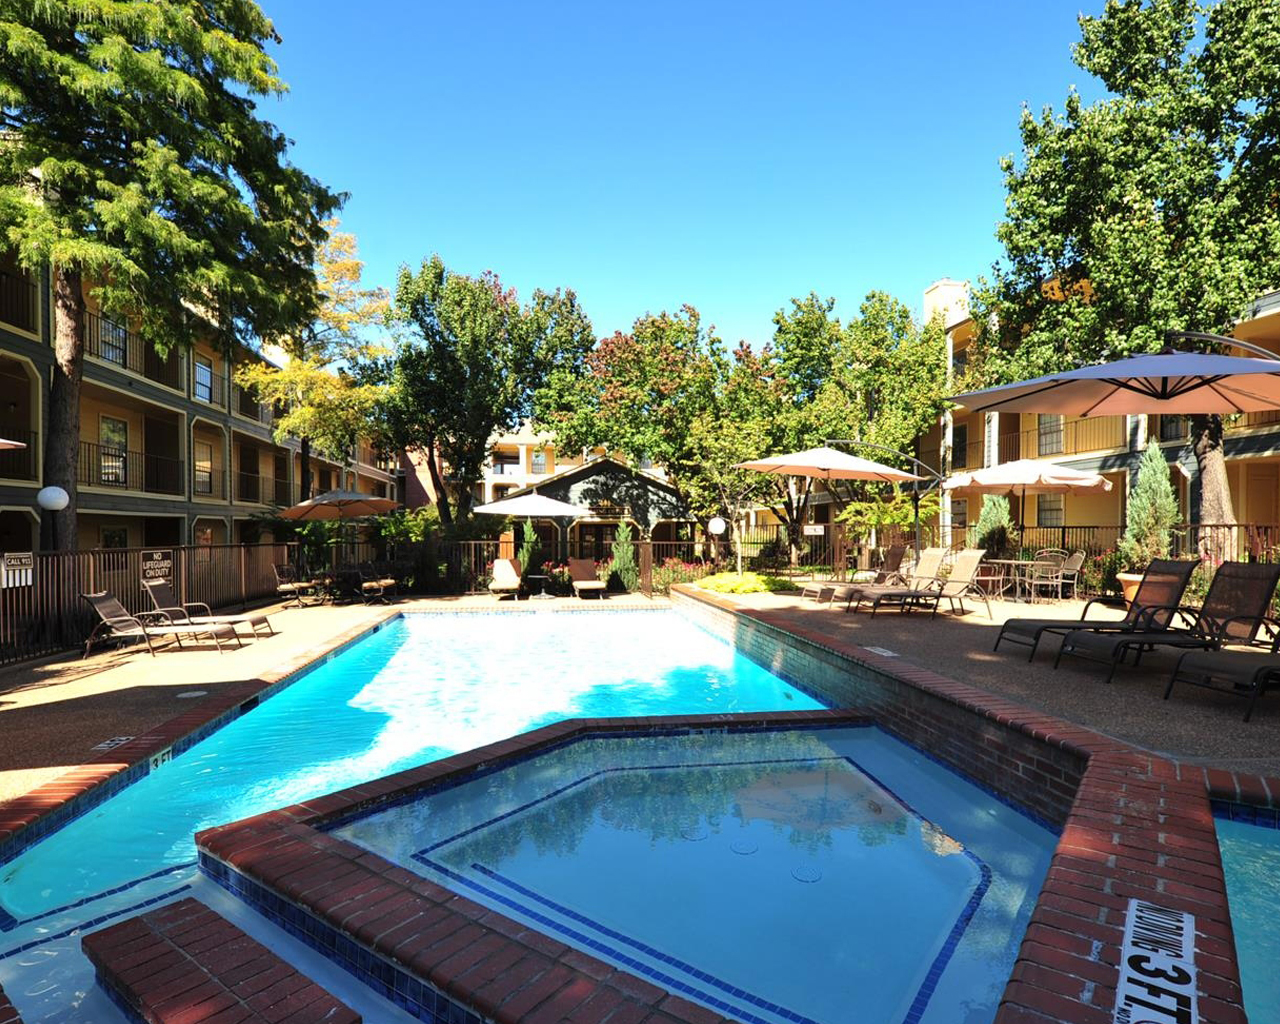 Sparking pool and sundeck at Forest Hills apartments